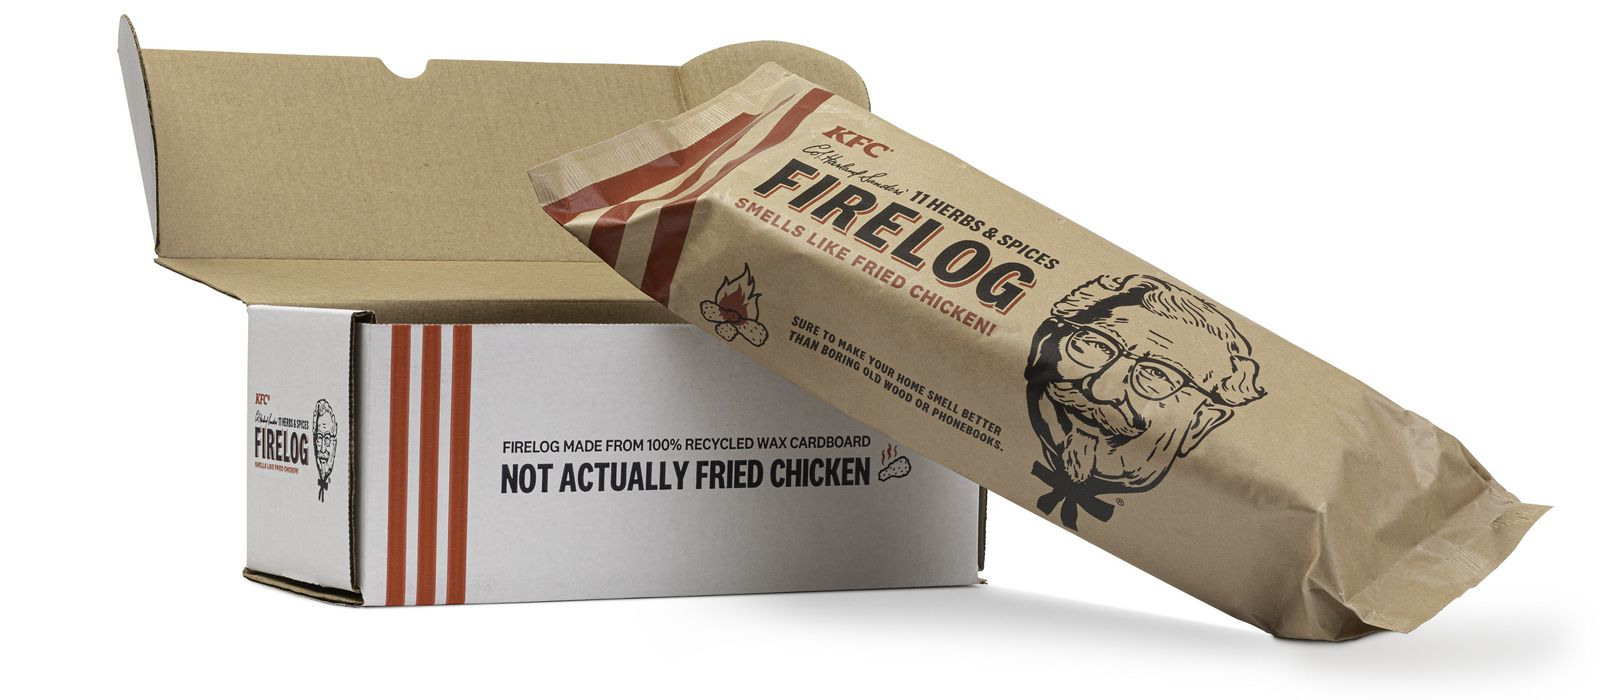 KFC's Famous Fried Chicken-Scented Firelogs Return for Sale Starting Today Exclusively at Walmart.com